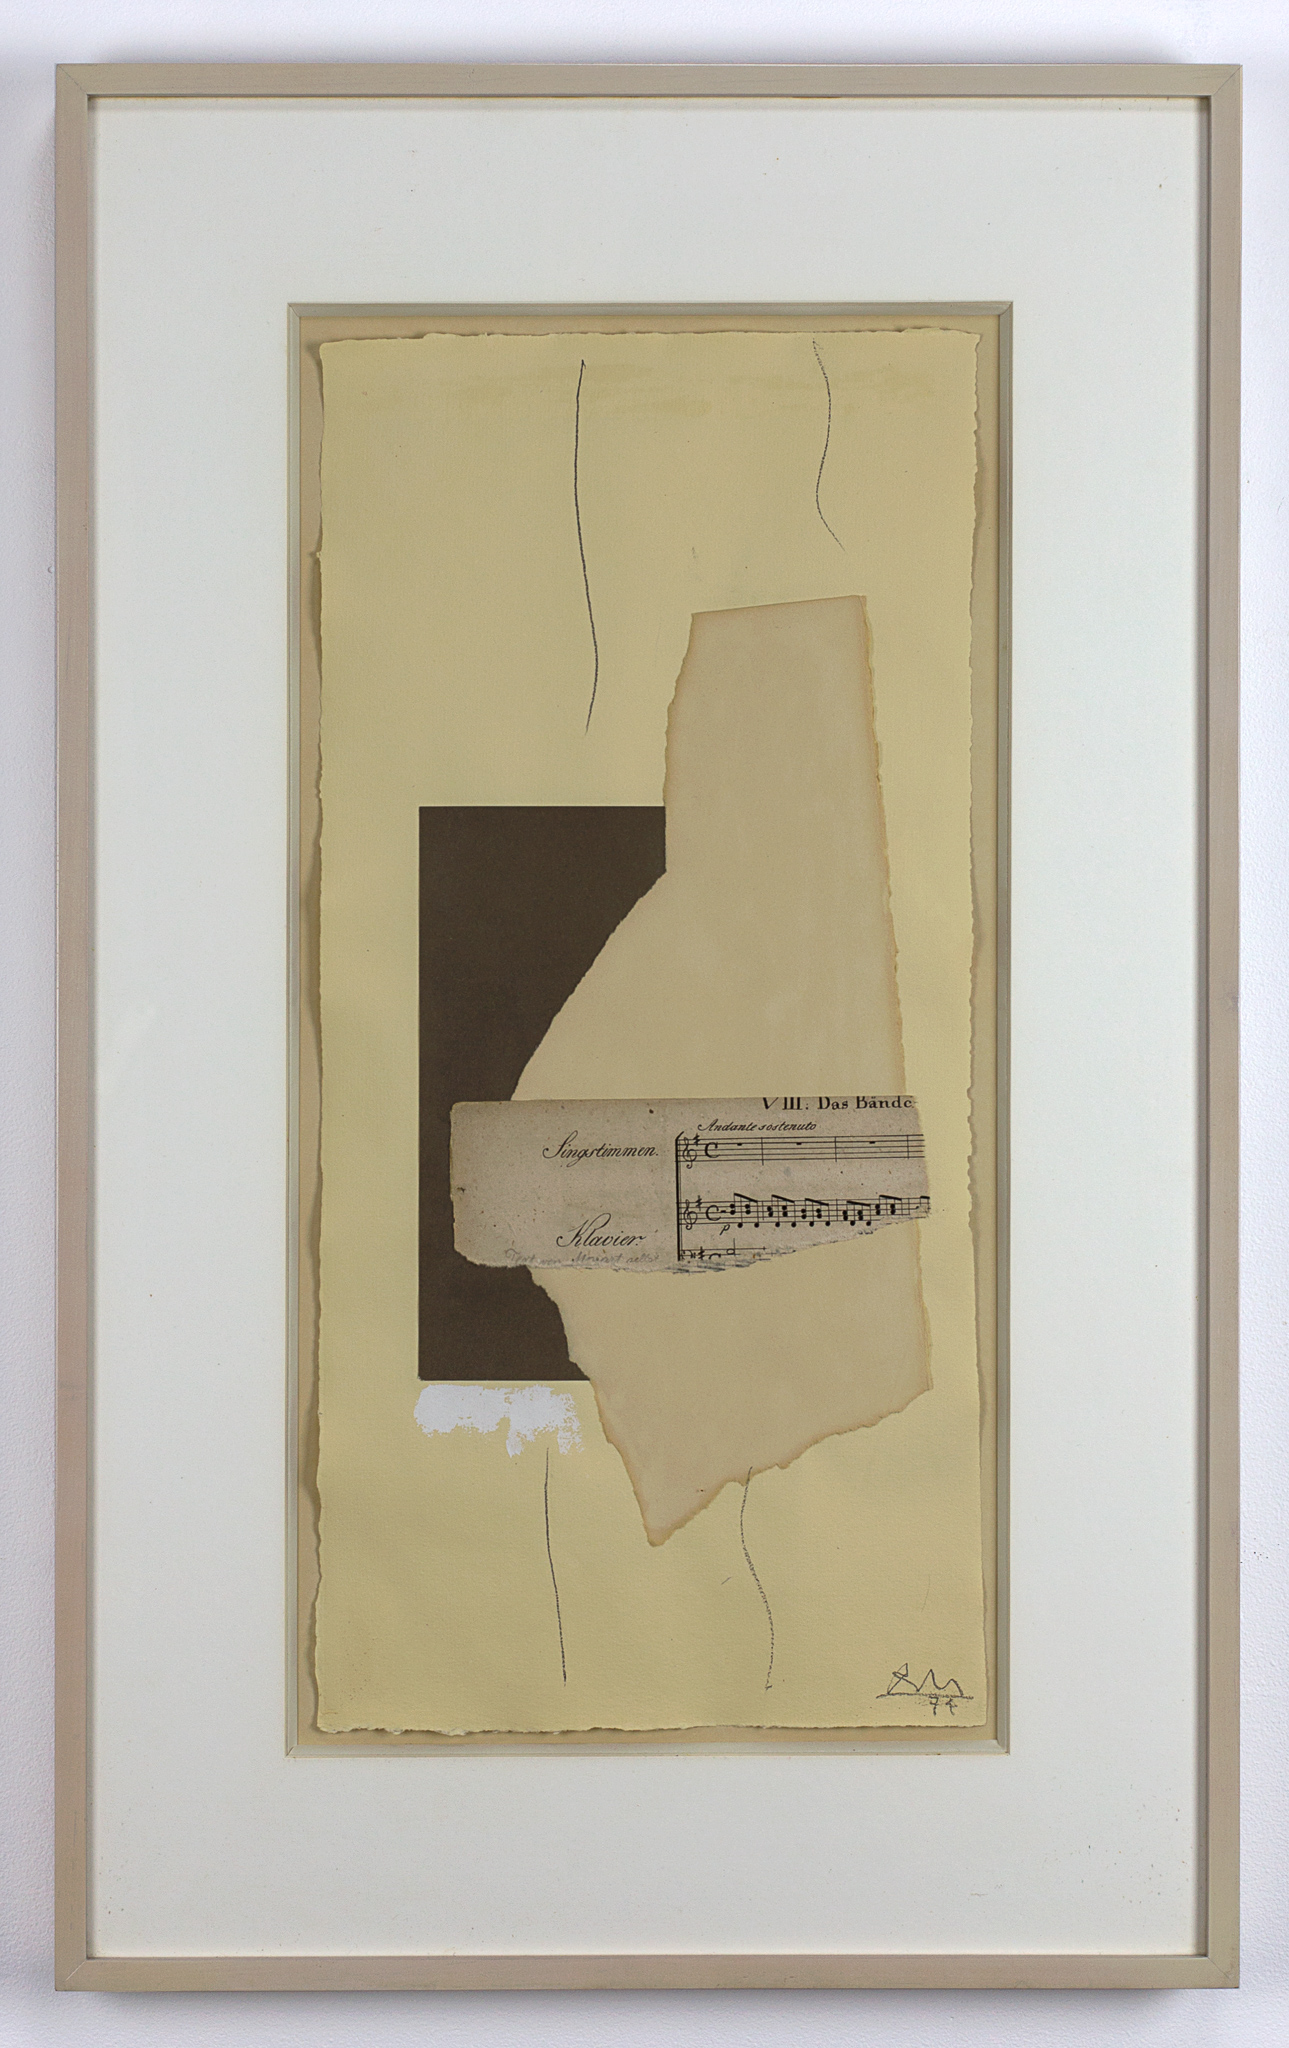 Robert Motherwell Cabaret #4 1974. Sold For $23,750 At Capsule Gallery Auction